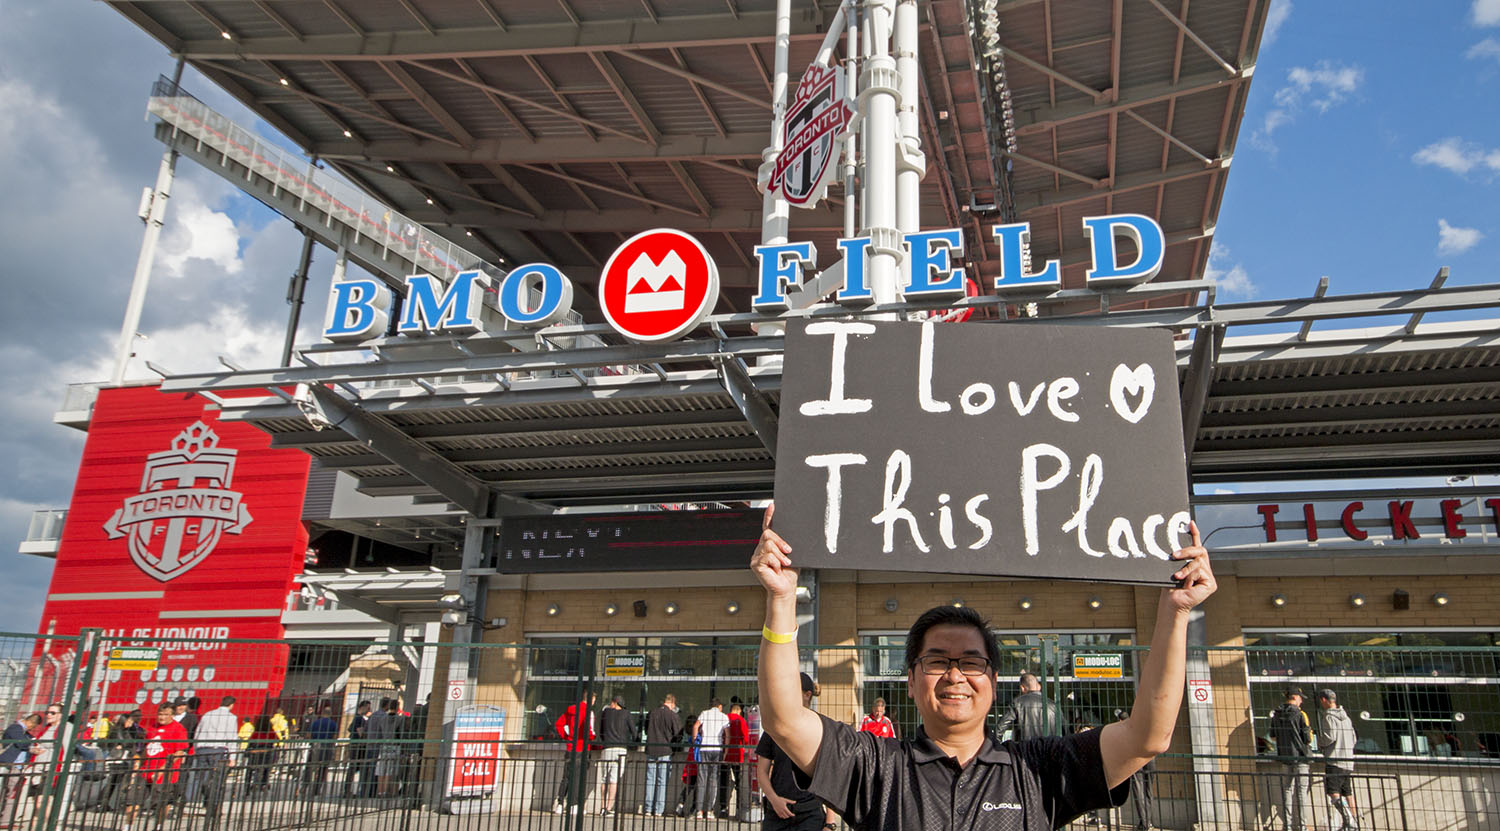 Does anyone know who this is? The week before he had a sign saying that it was his first game and now he has a sign that says, 'I love this place'.Image by Dennis Marciniak of denMAR Media.